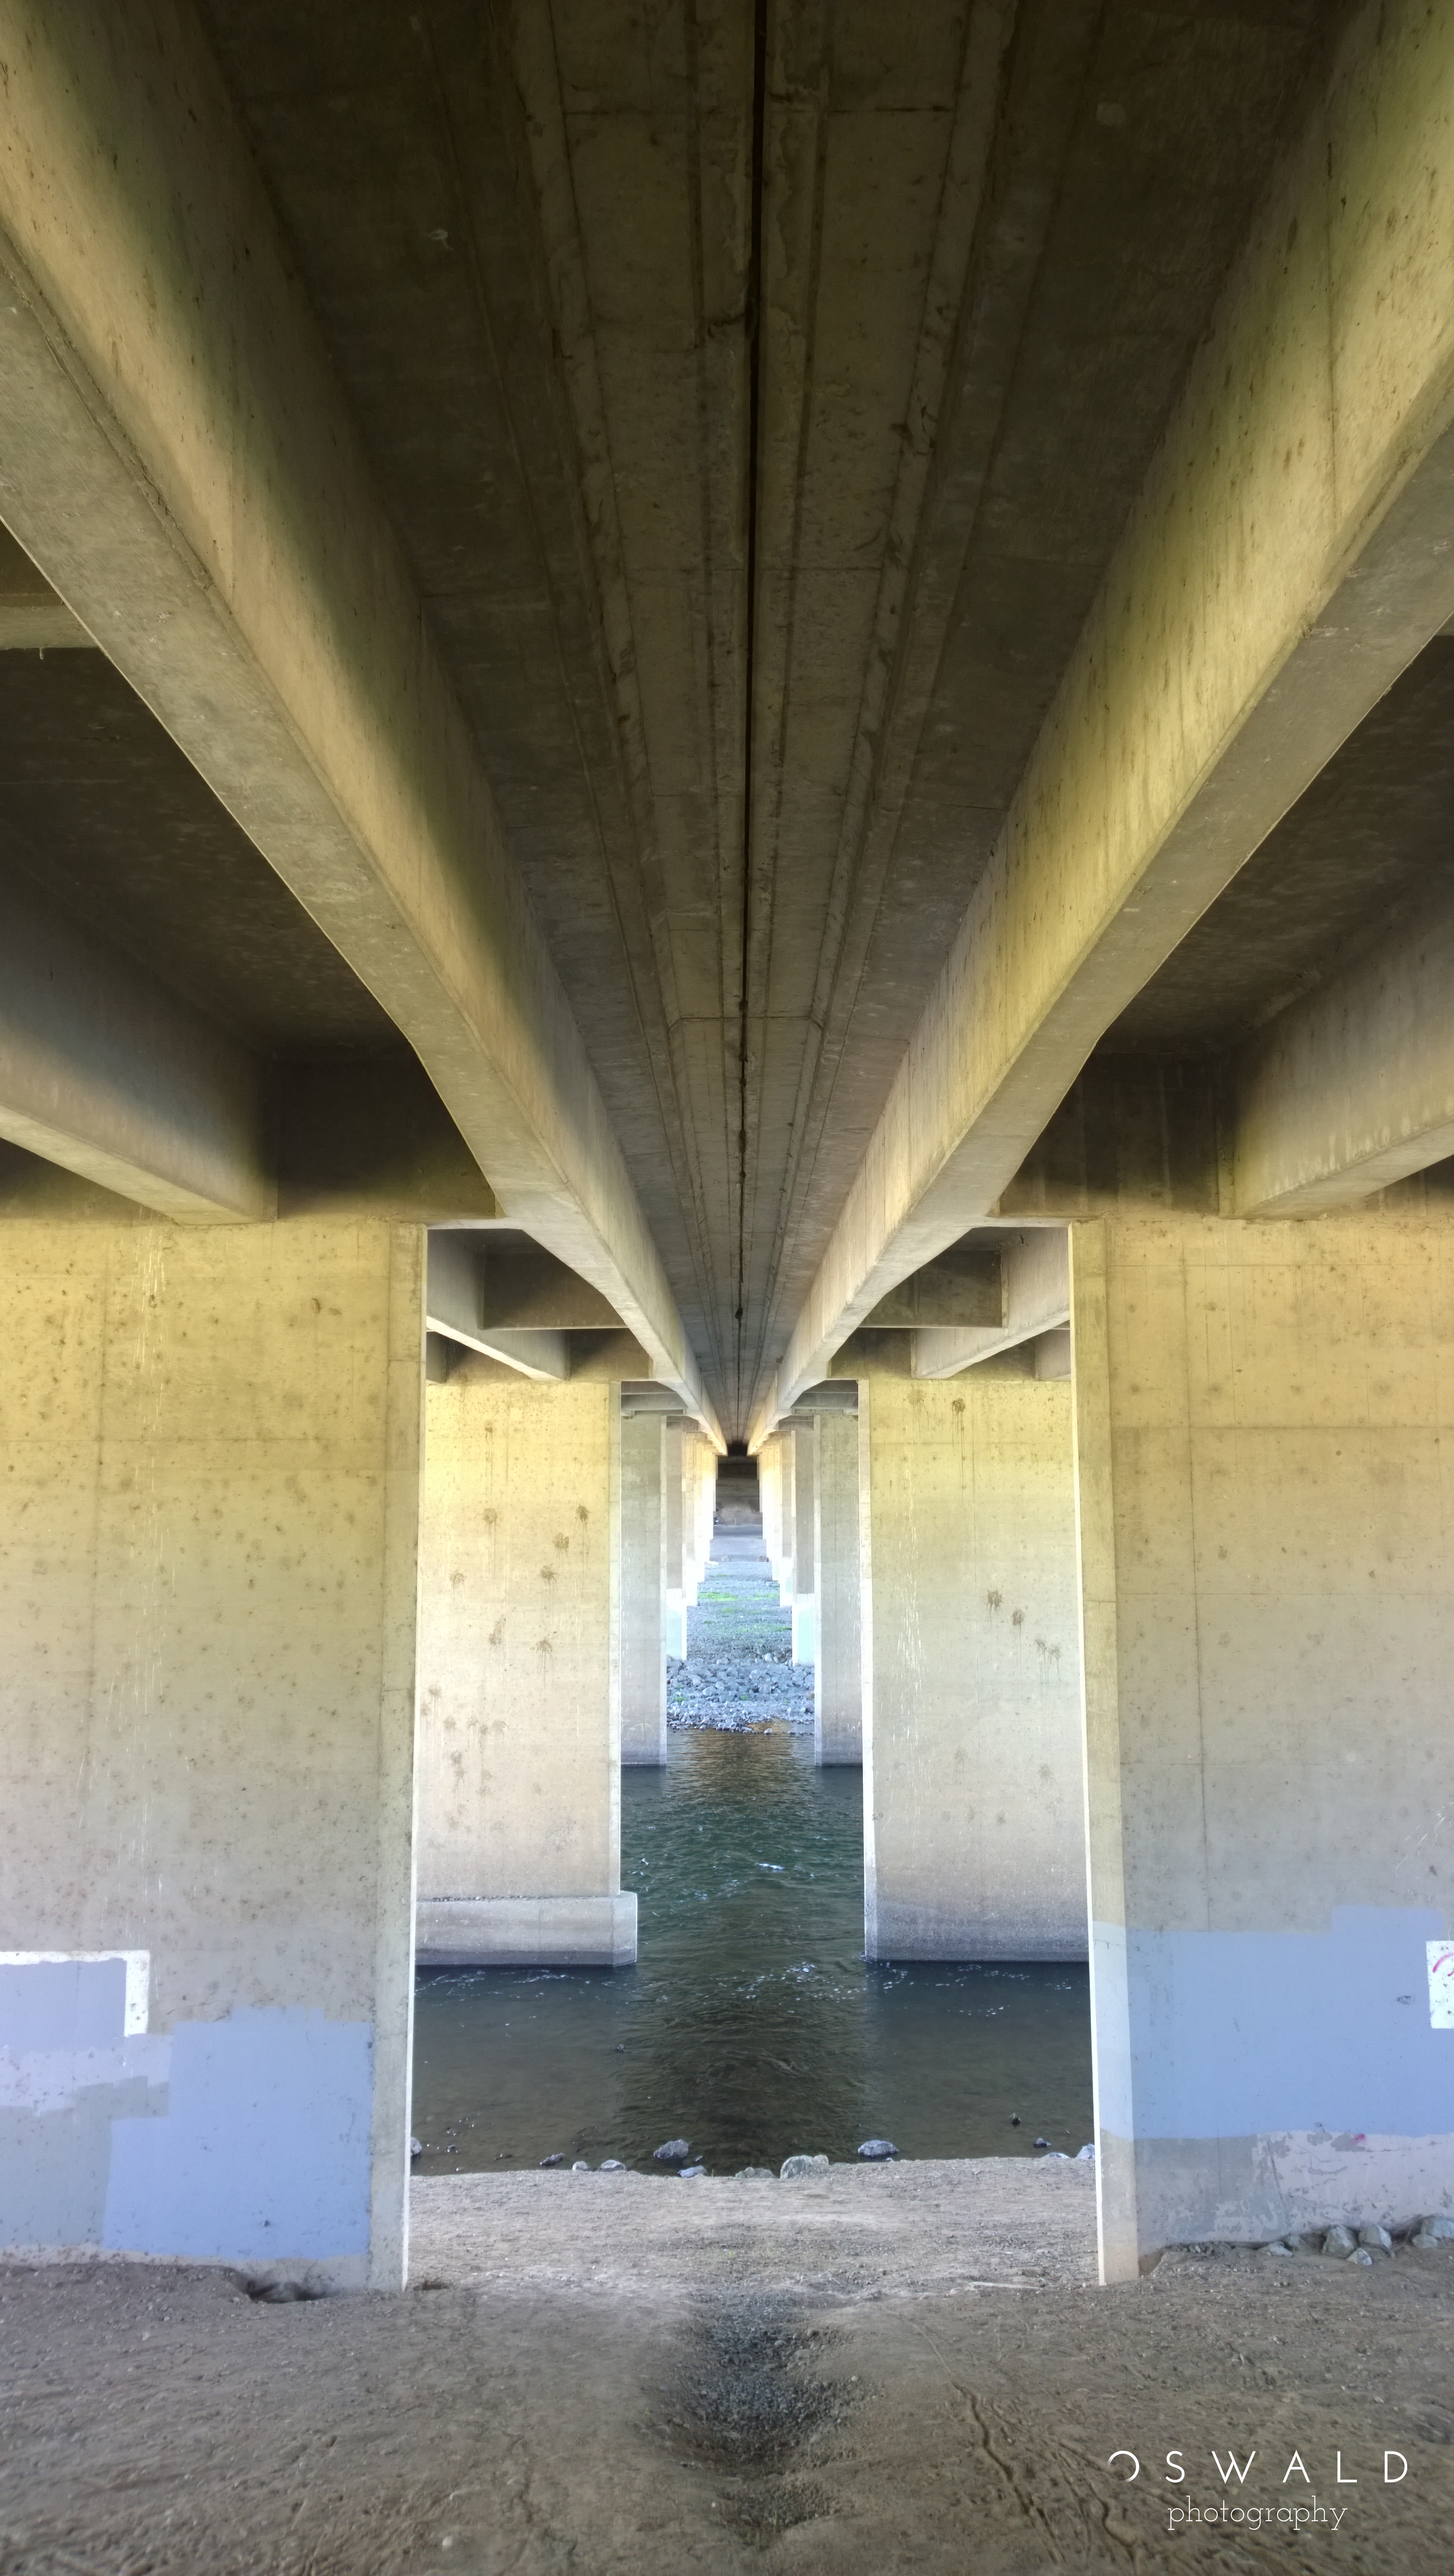 Photograph of the landscape beneath Howe Avenue Bridge